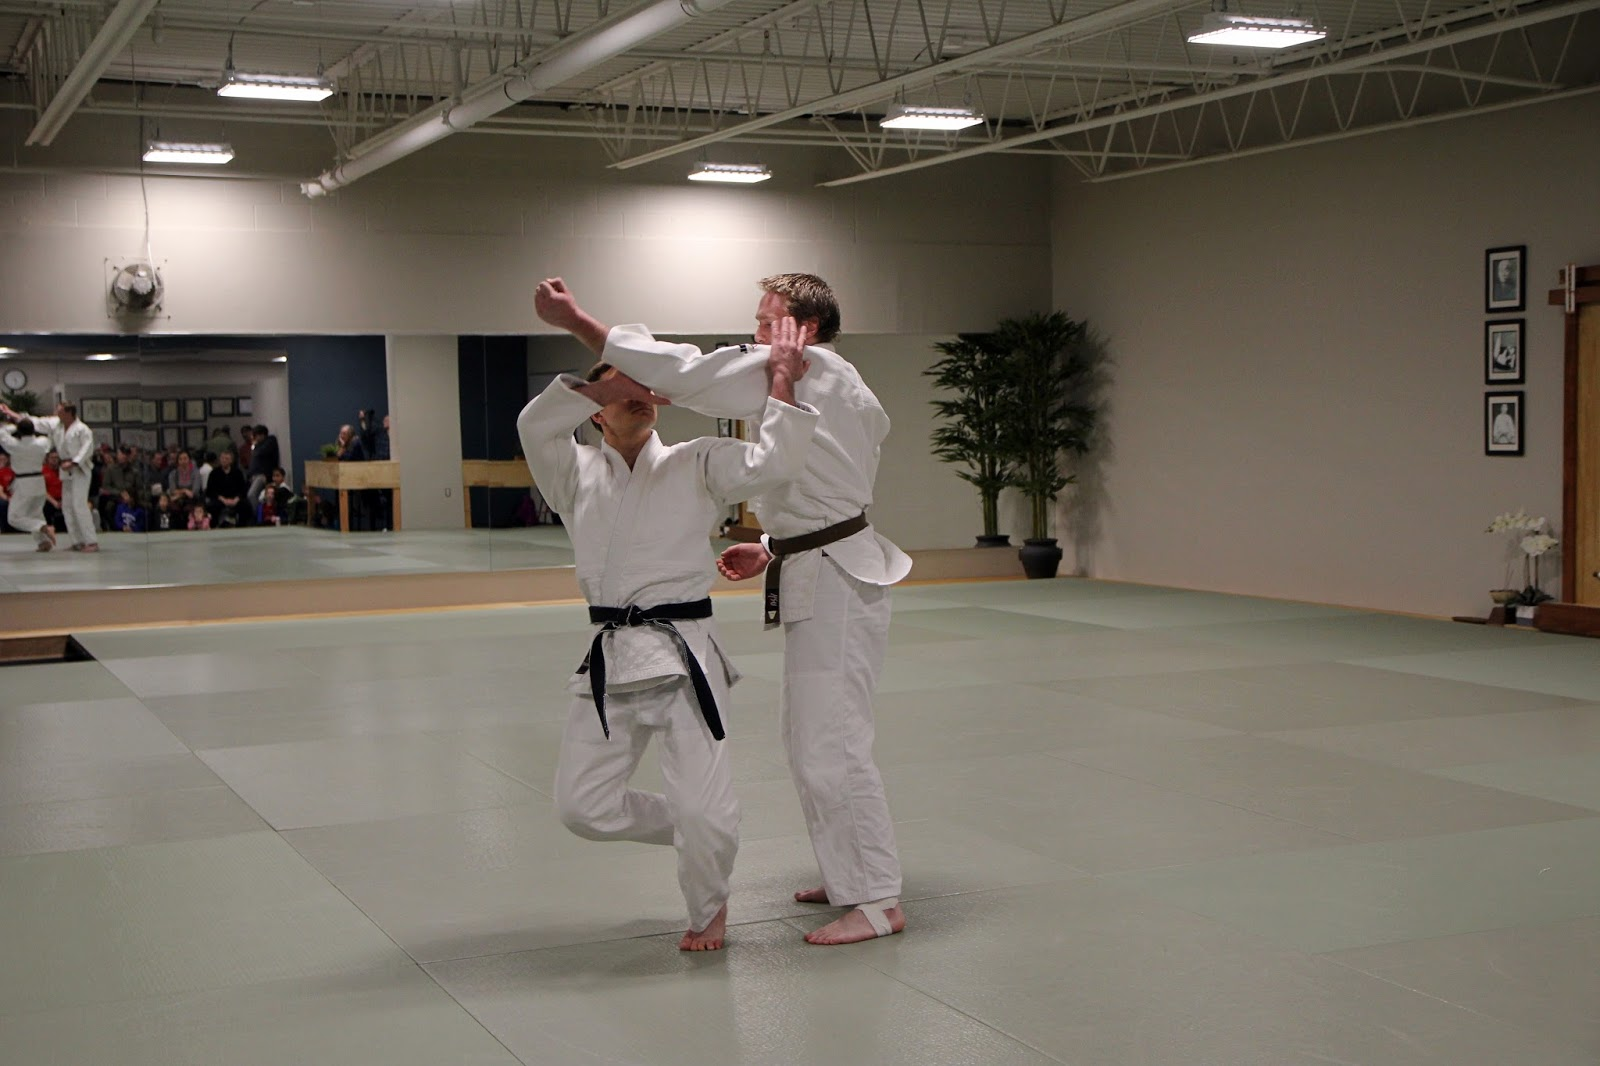 JAPANESE MARTIAL ARTS CENTER: The Magic of Persistence at JMAC